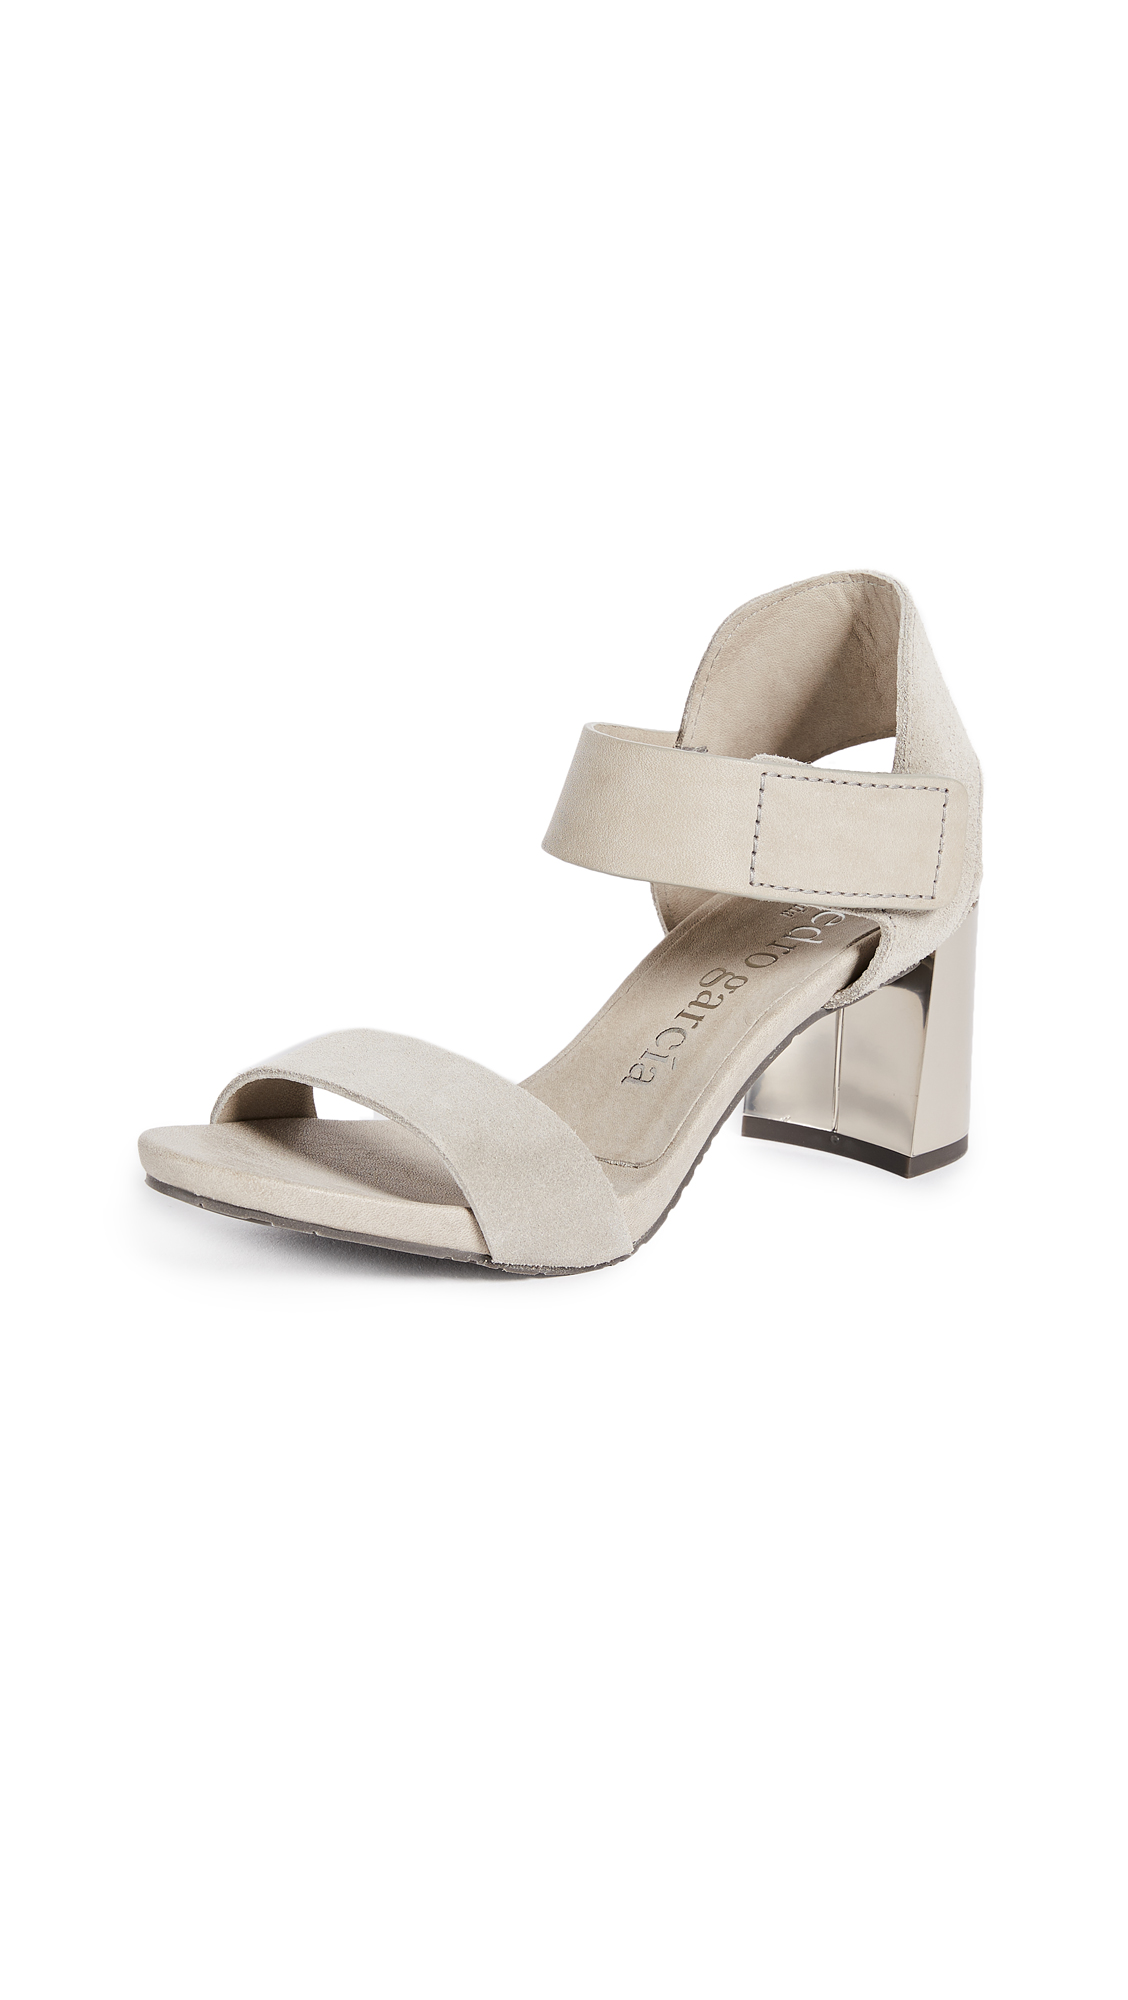 Pedro Garcia Willa Sandals - Pumice